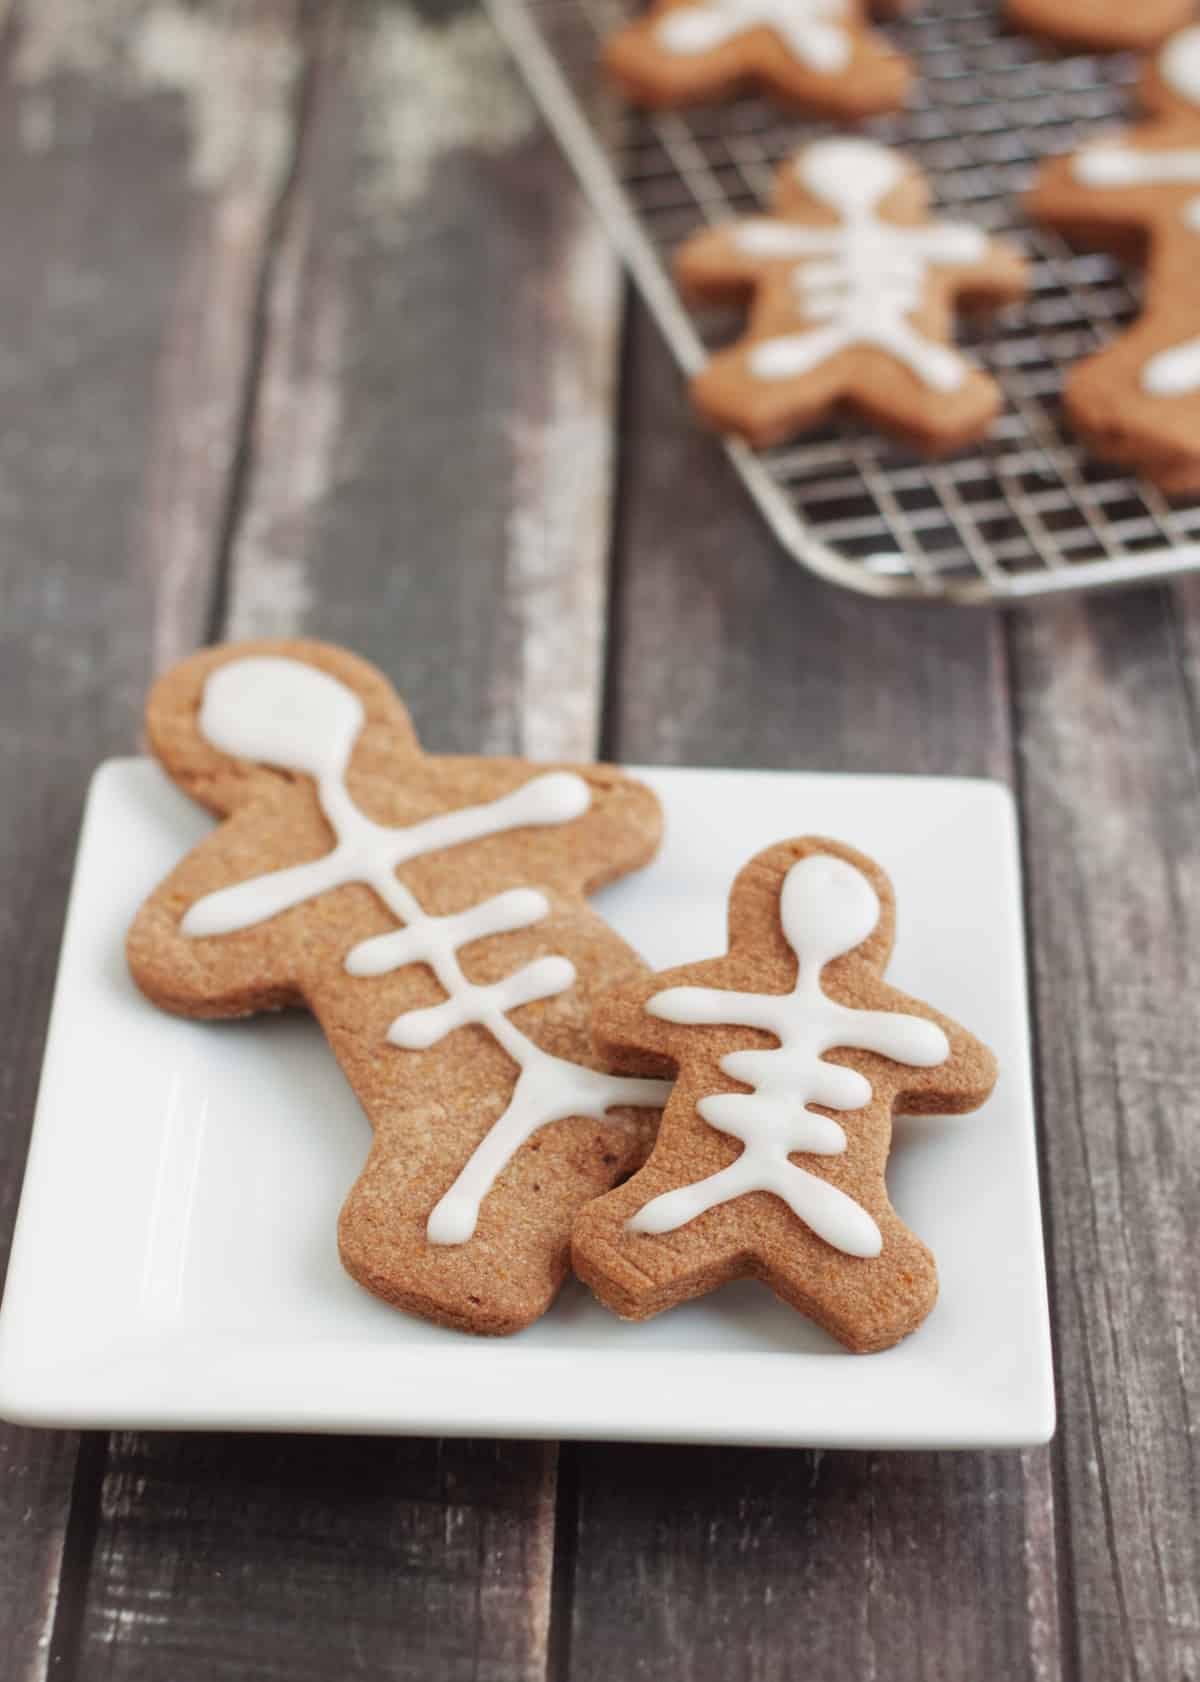 Mexican chocolate sugar cookies decorated to look like skeletons placed on a white plate with extras on a baking rack in upper right.